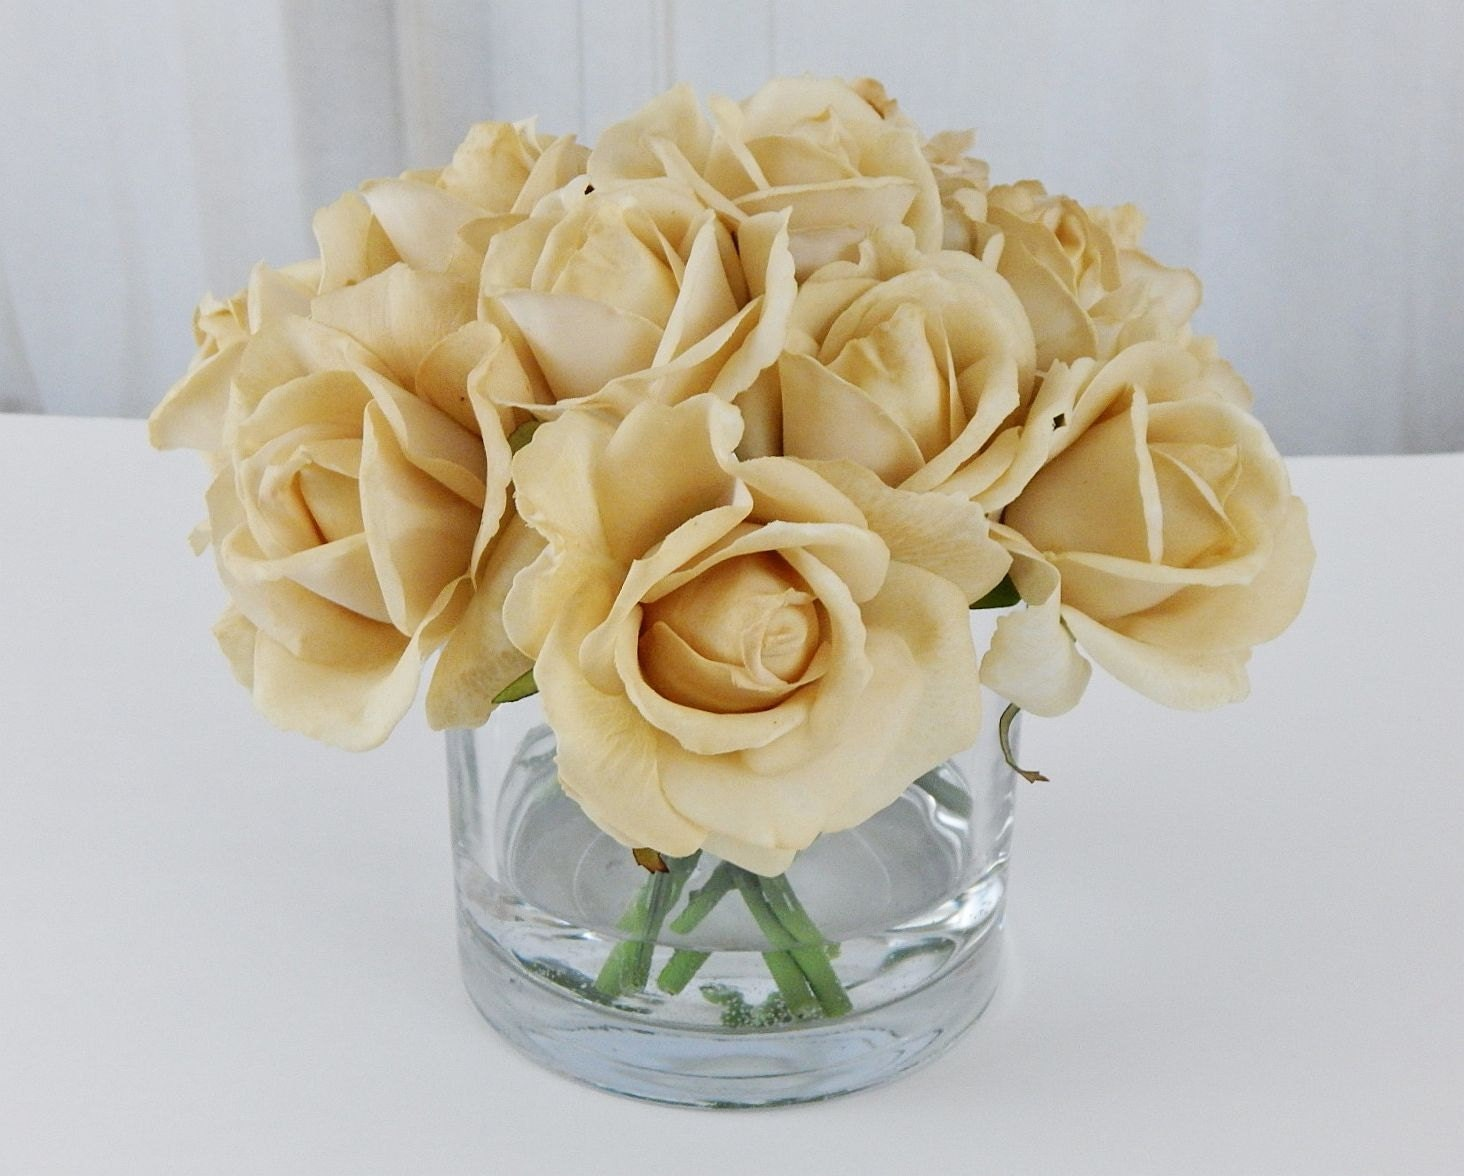 Champagne Tan Beige Rose Roses Faux Water Acrylic